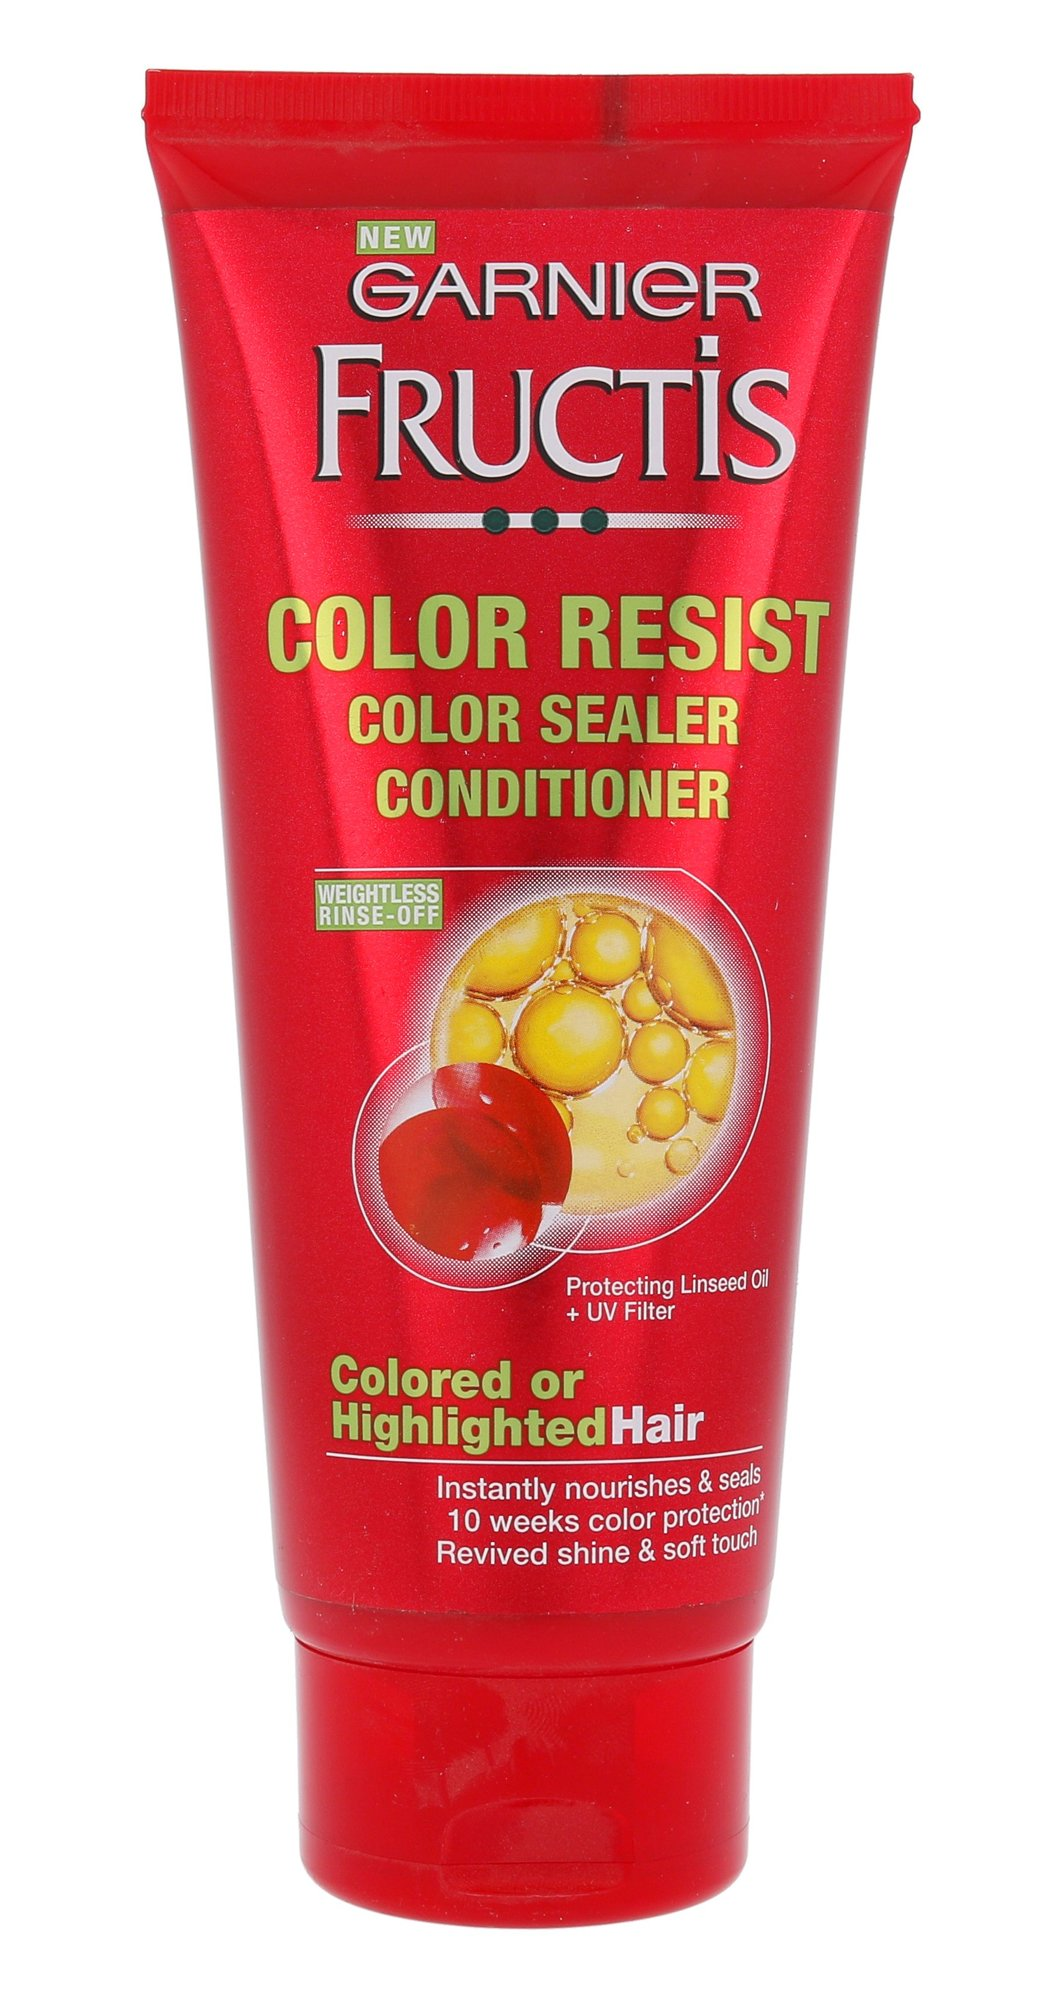 Garnier Fructis Color Resist Cosmetic 200ml